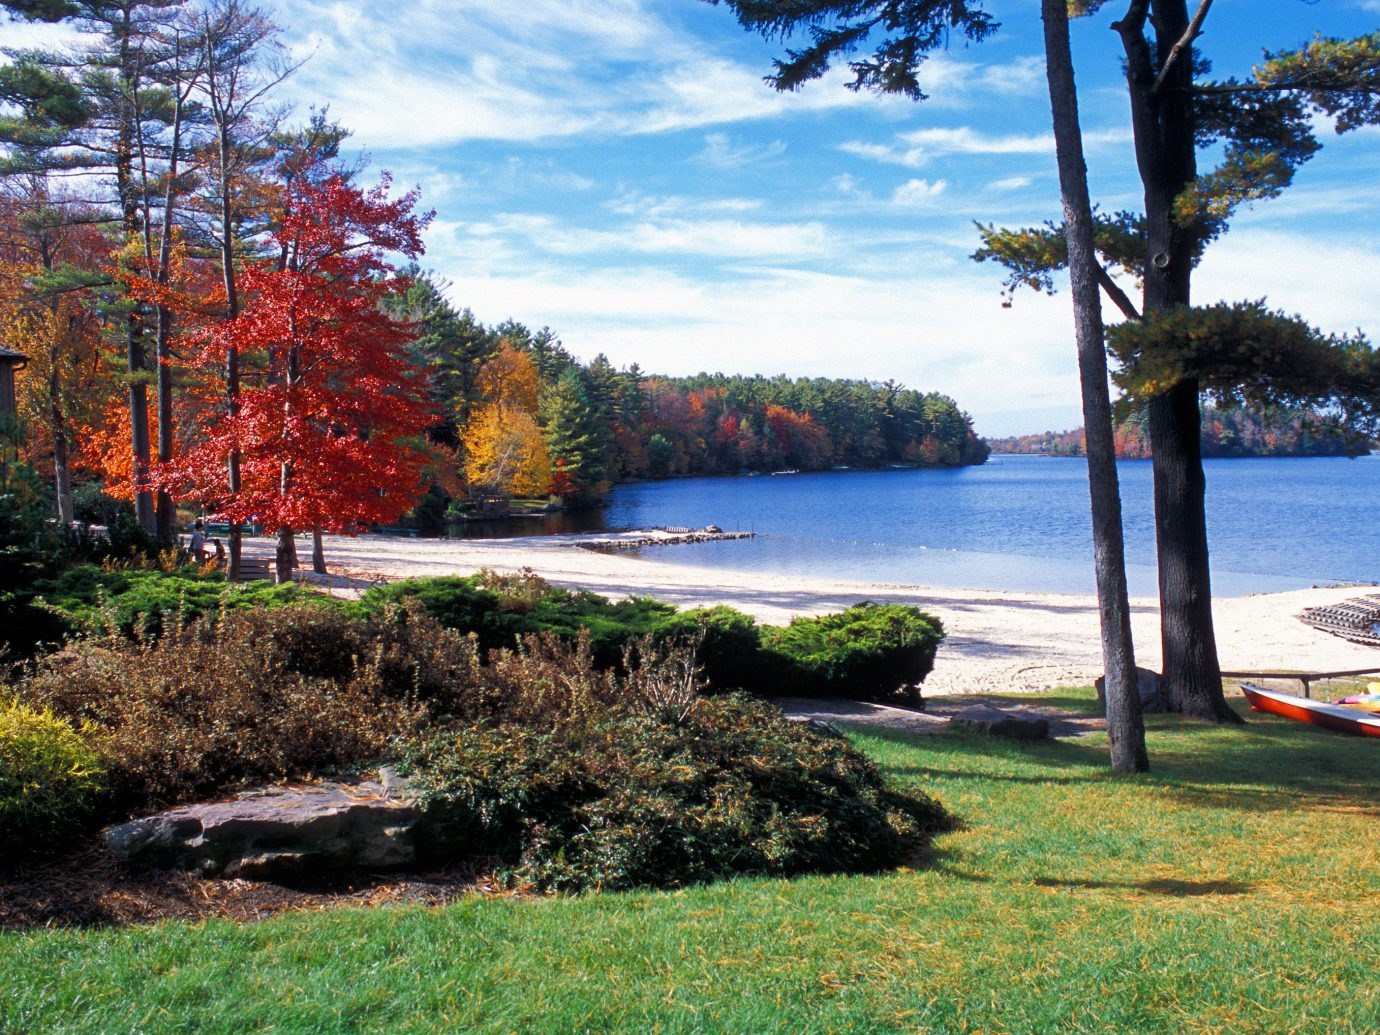 Outdoors + Adventure Road Trips Trip Ideas outdoor tree grass sky water Nature body of water leaf Lake shore plant reflection landscape Coast bay bank autumn loch Sea inlet day